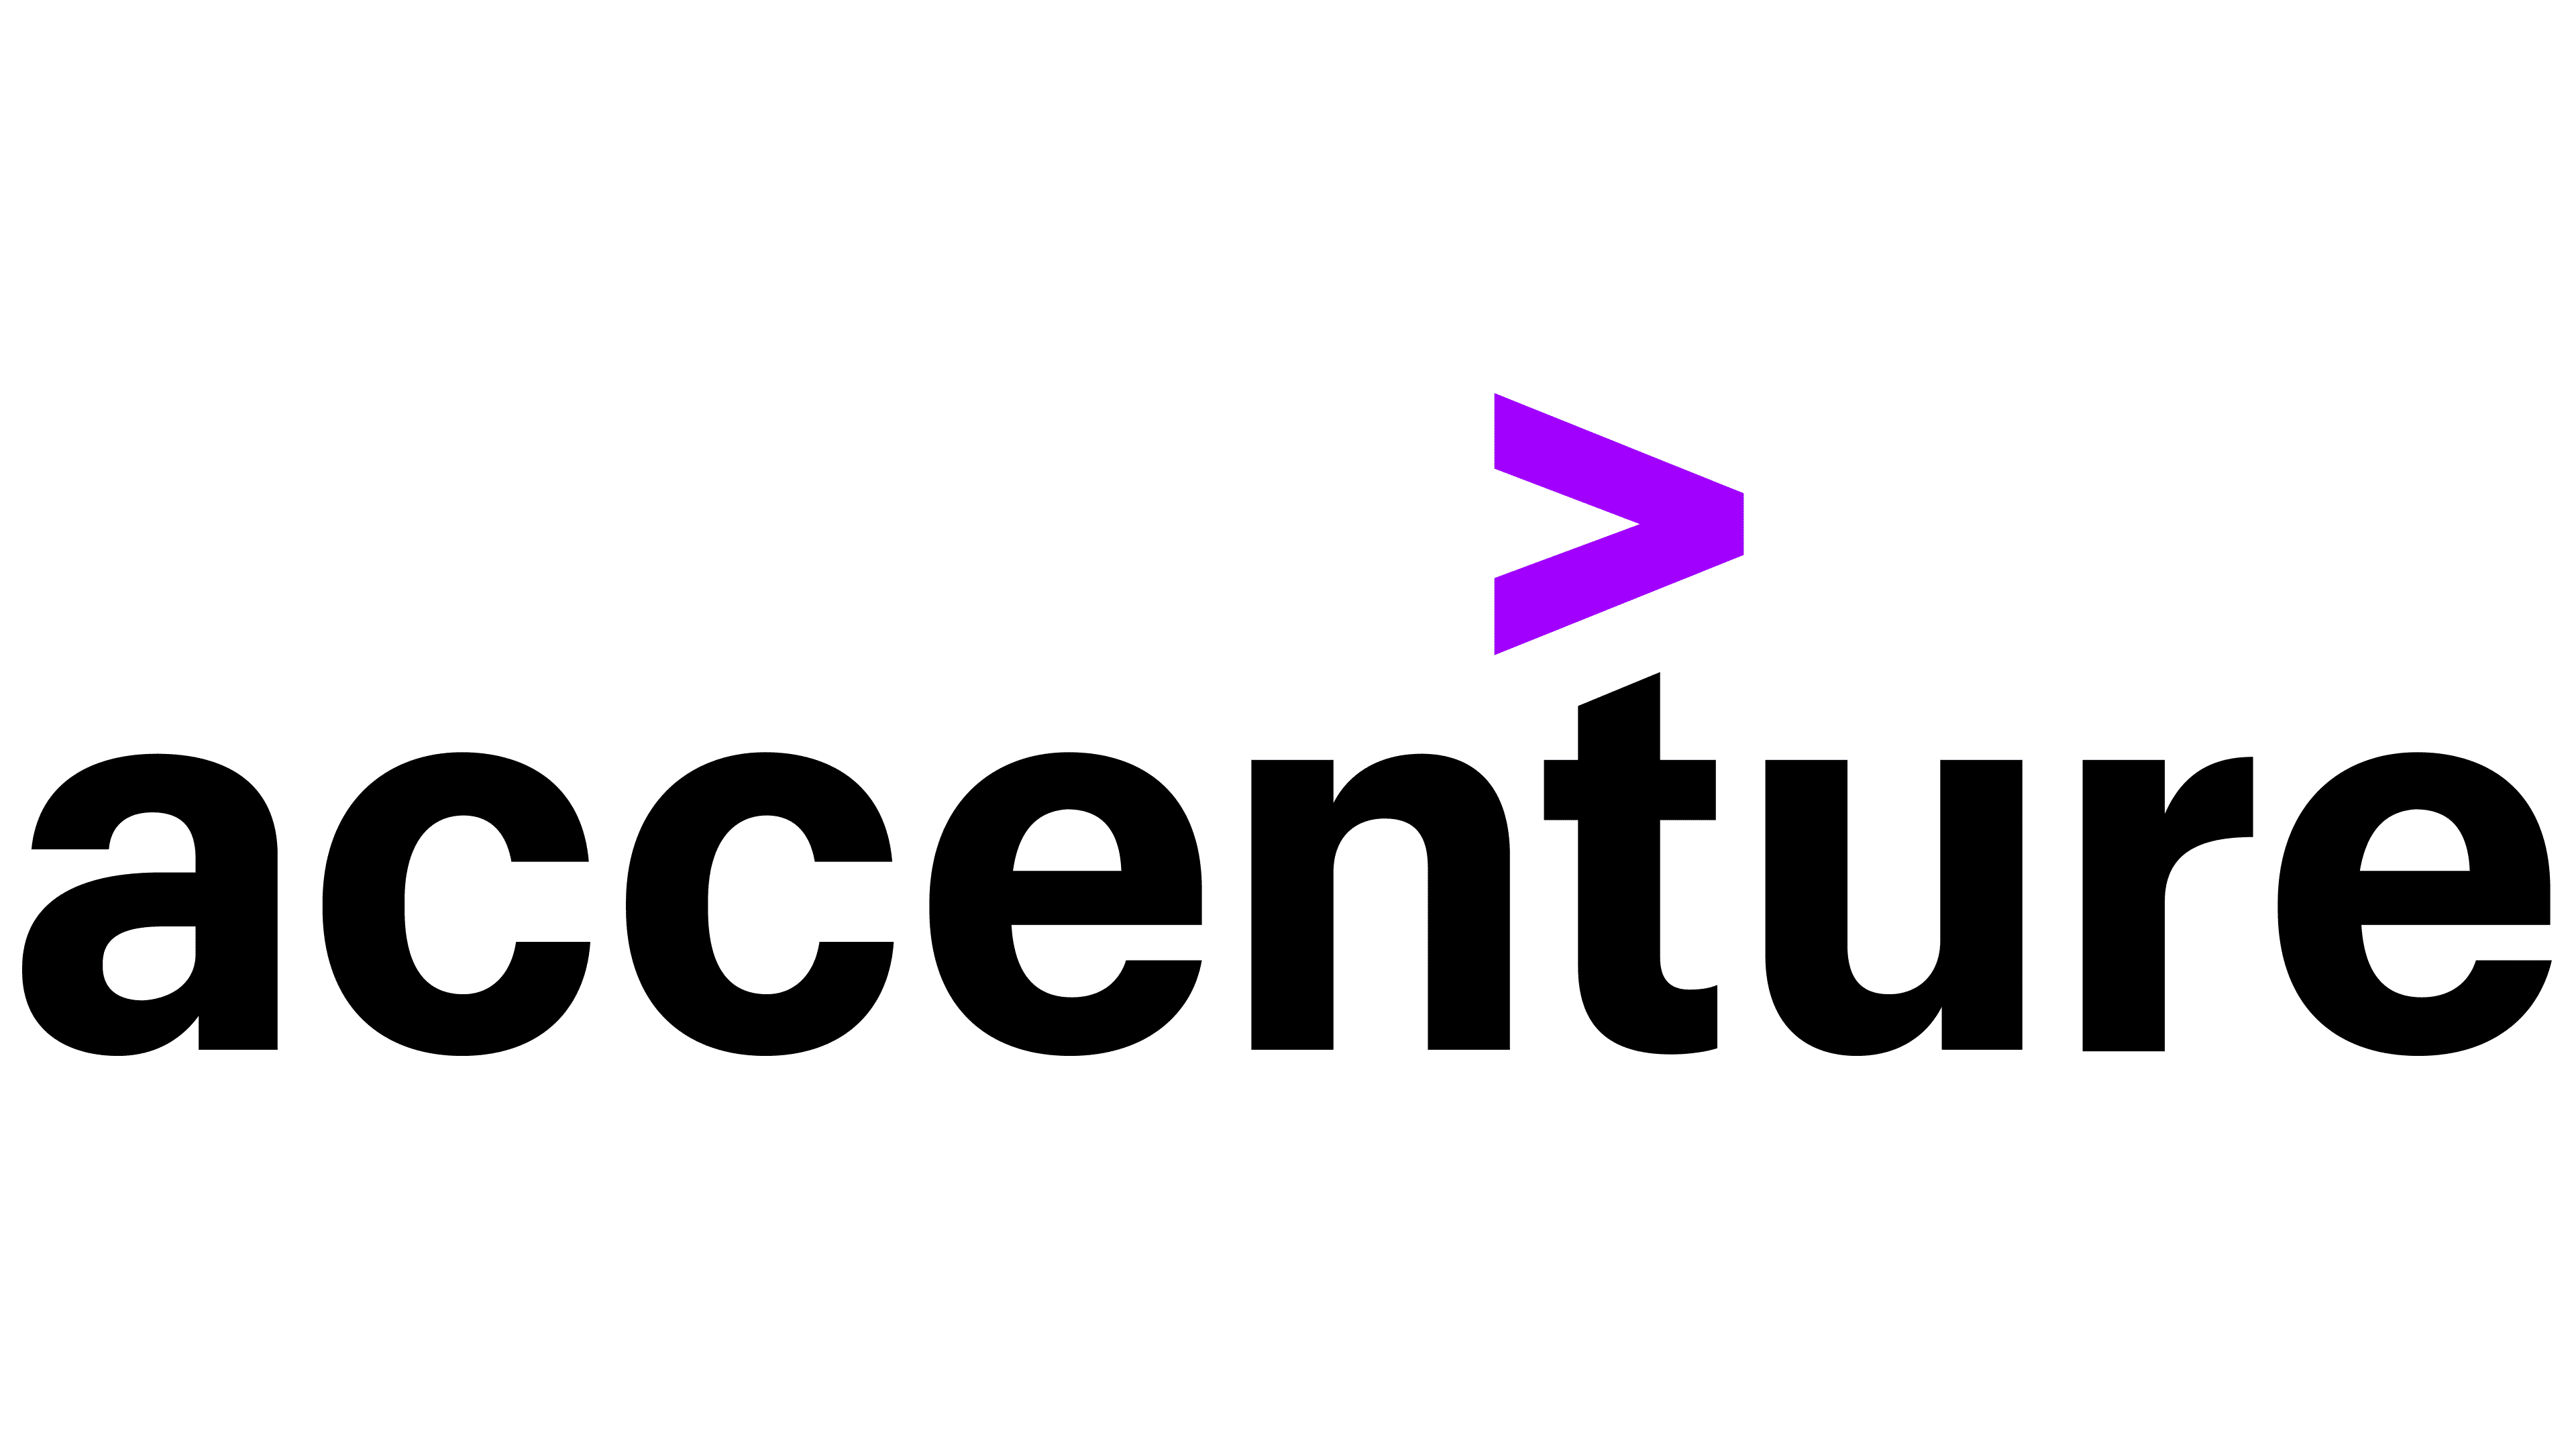 Accenture Logo | The most famous brands and company logos in the world